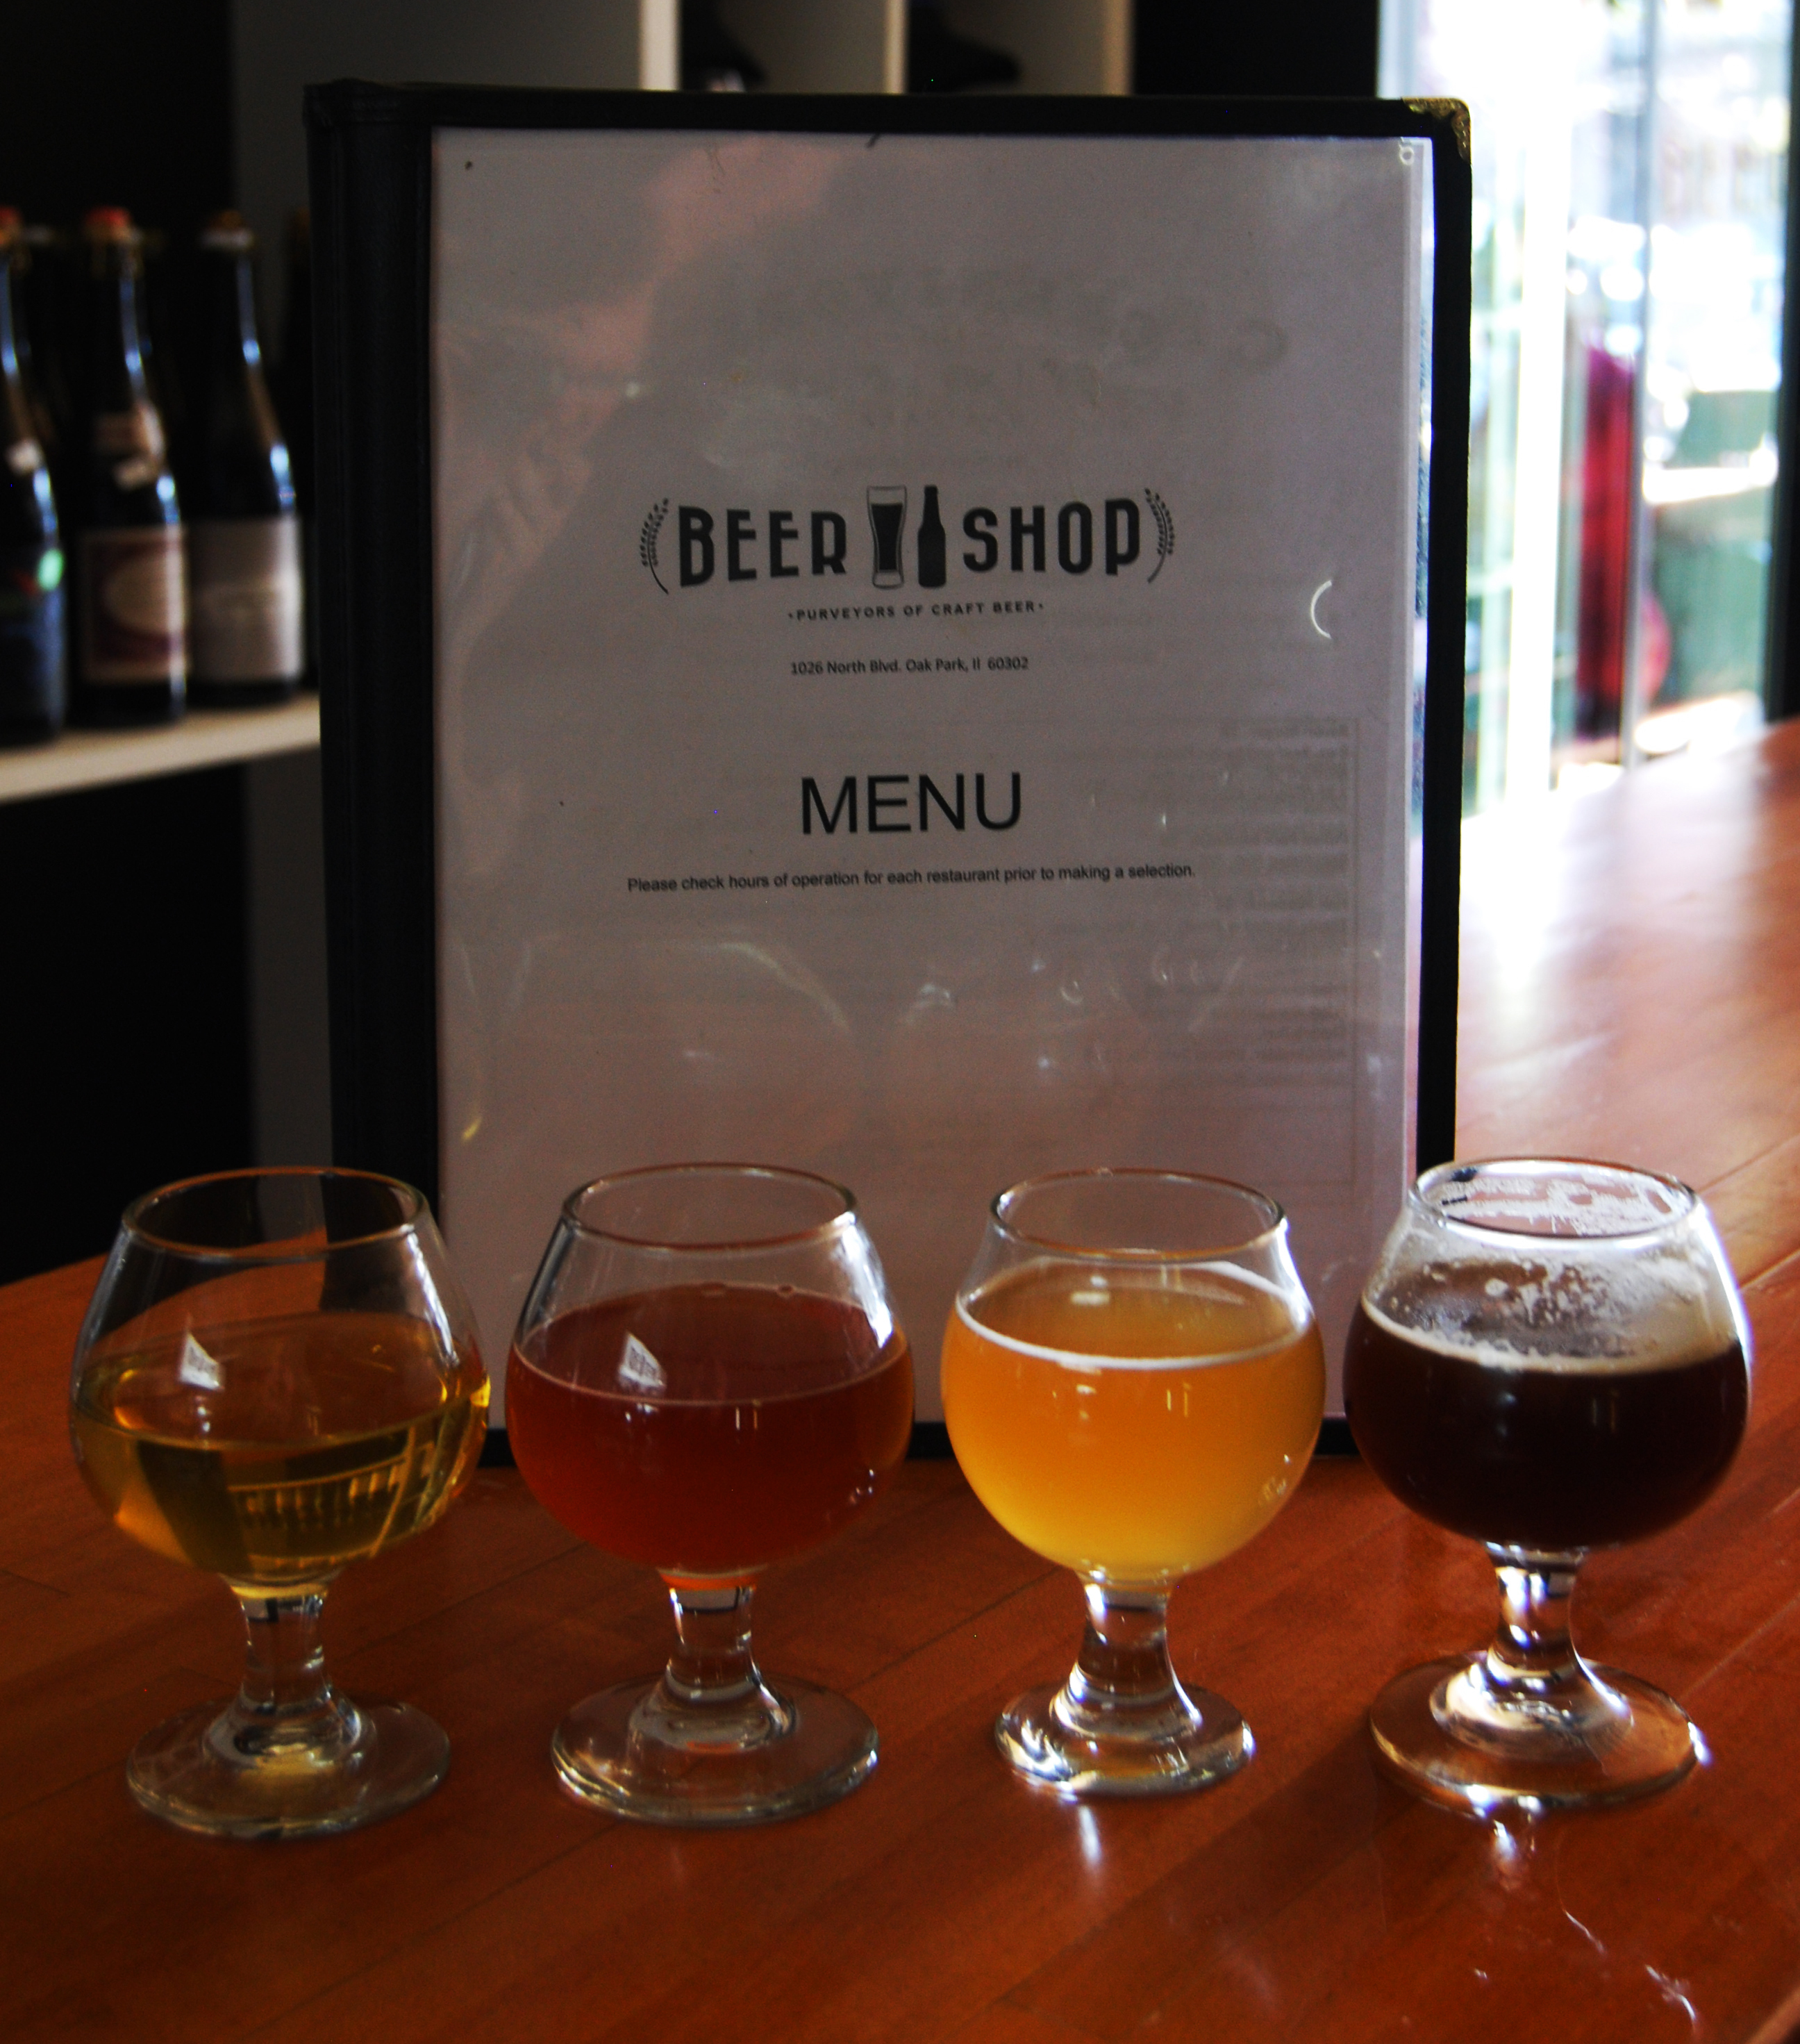 The beers, from left to right: Oaked Maple, Interlude, Wakatu Sour, Prearis Grand Cru 2013.